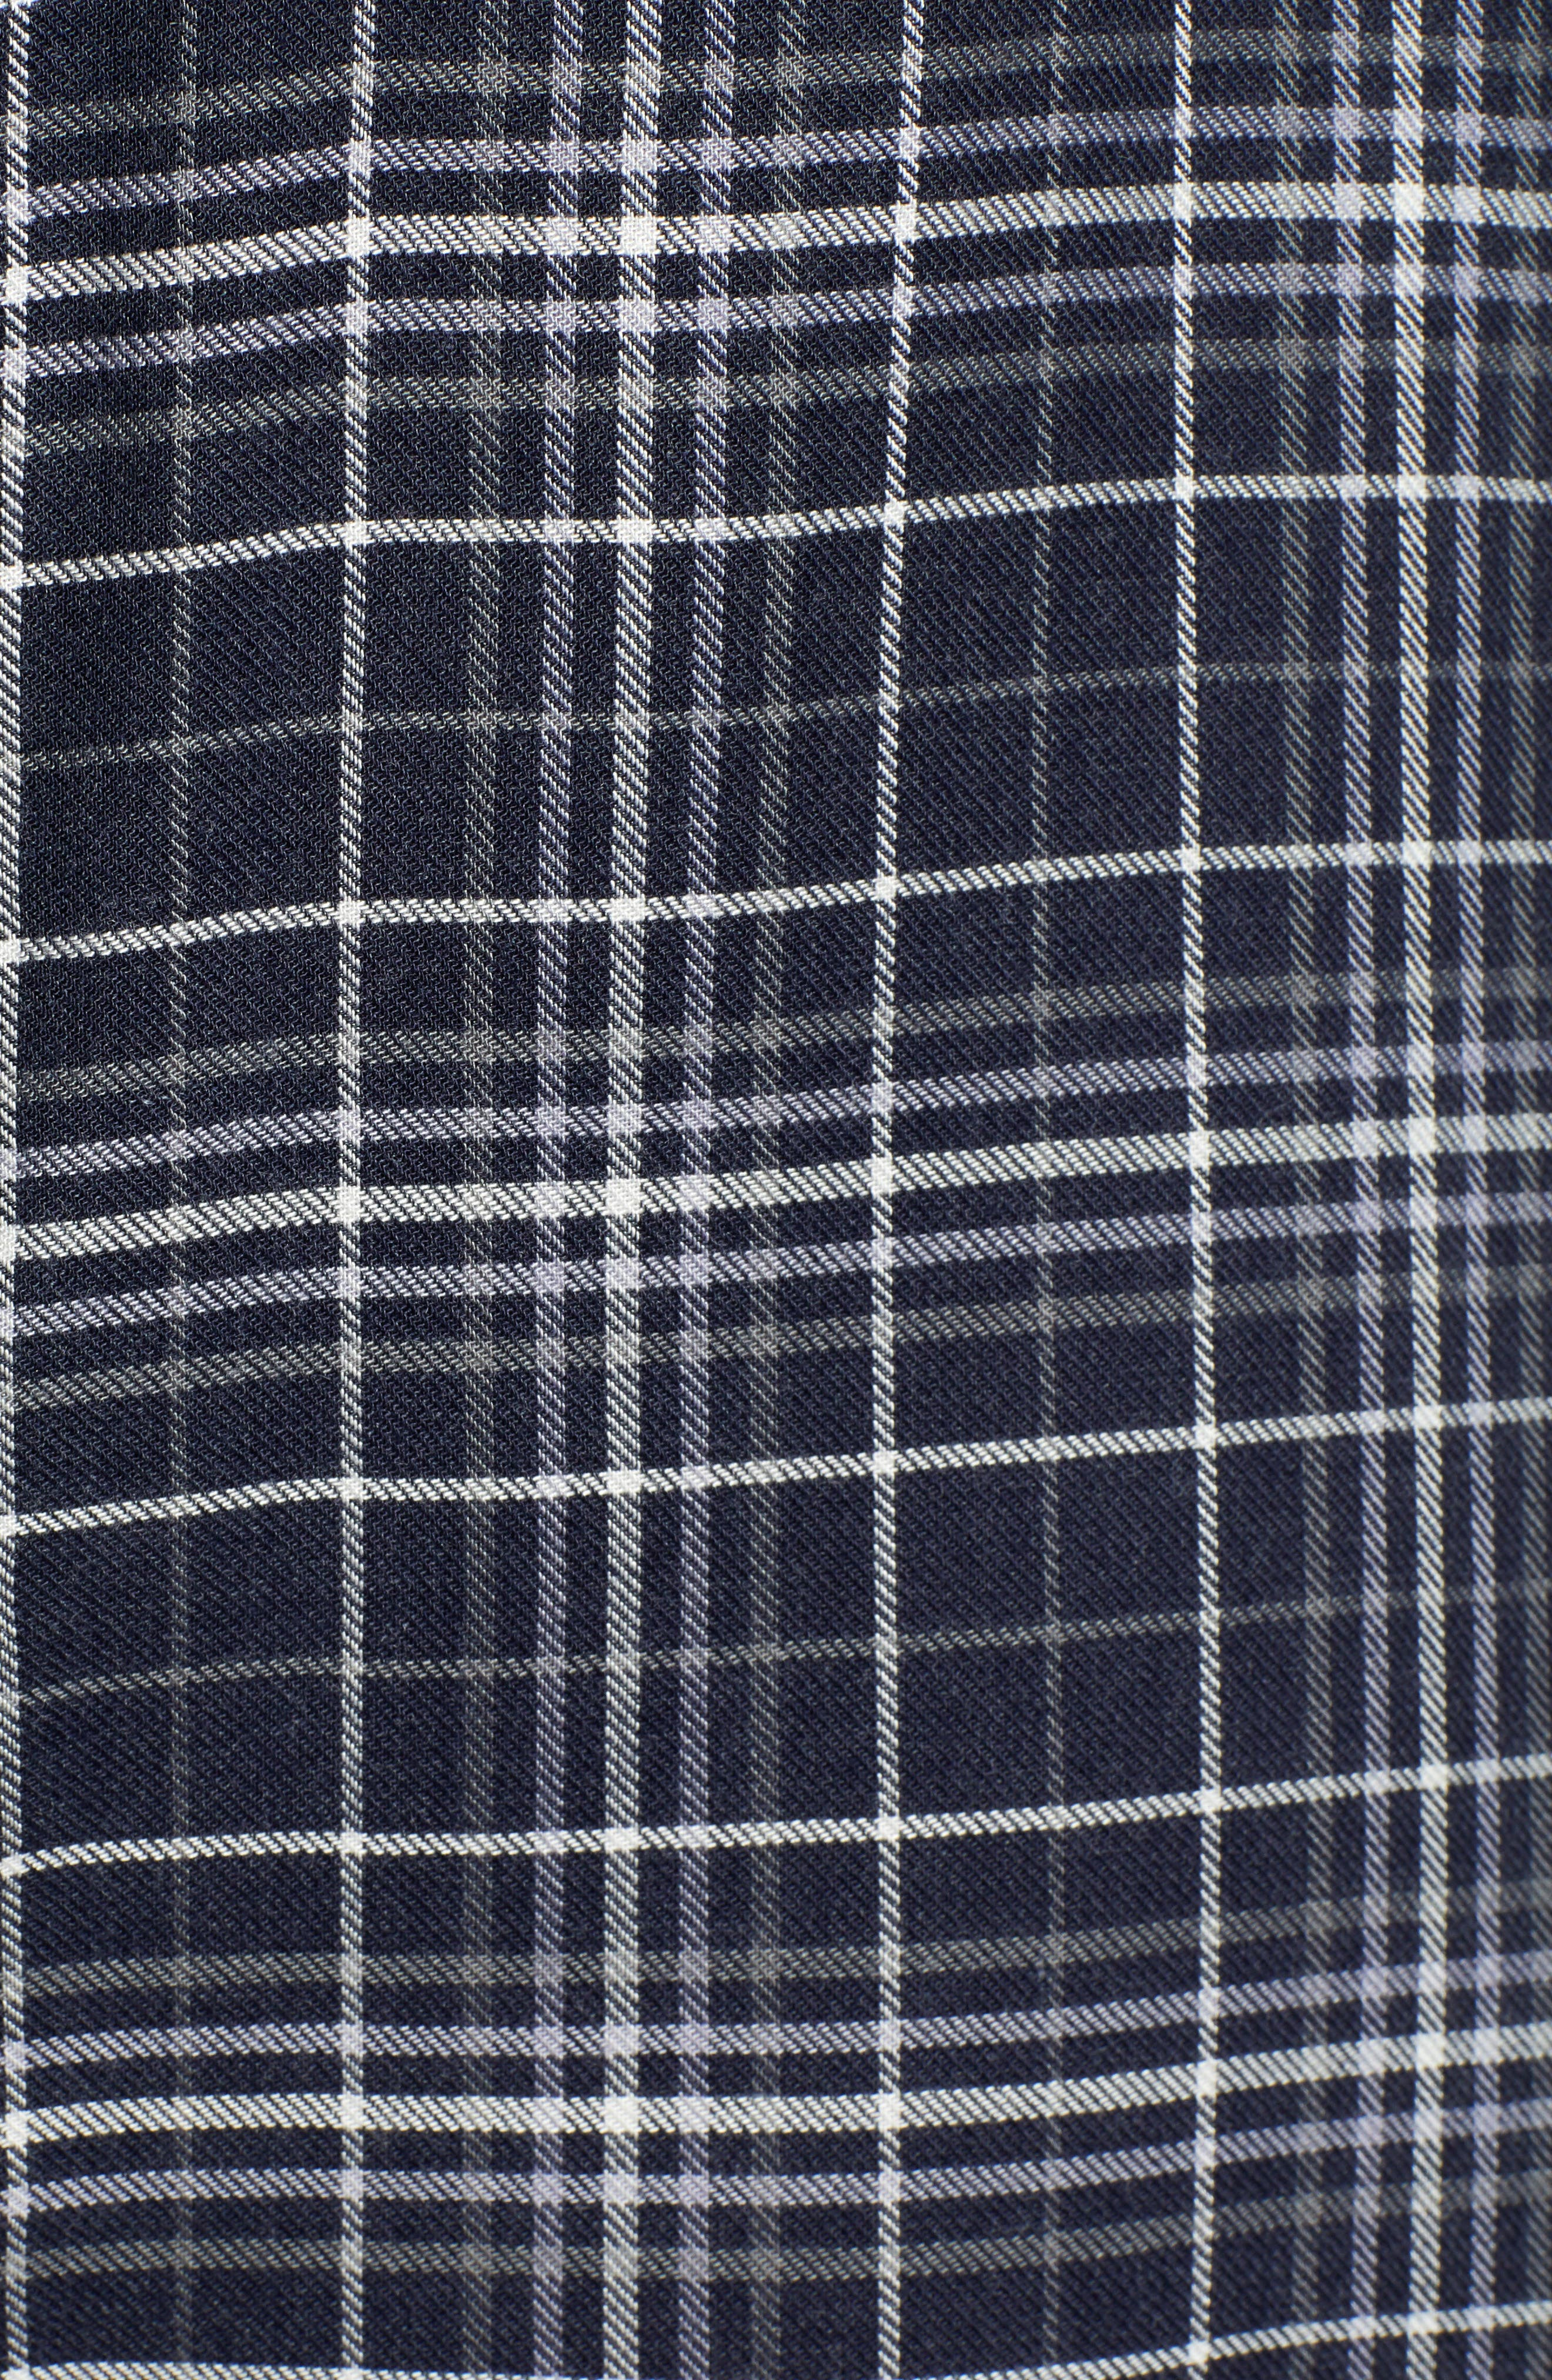 Plaid Boyfriend Shirt,                             Alternate thumbnail 5, color,                             NAVY NIGHT DOUBLE WINDOW PANE